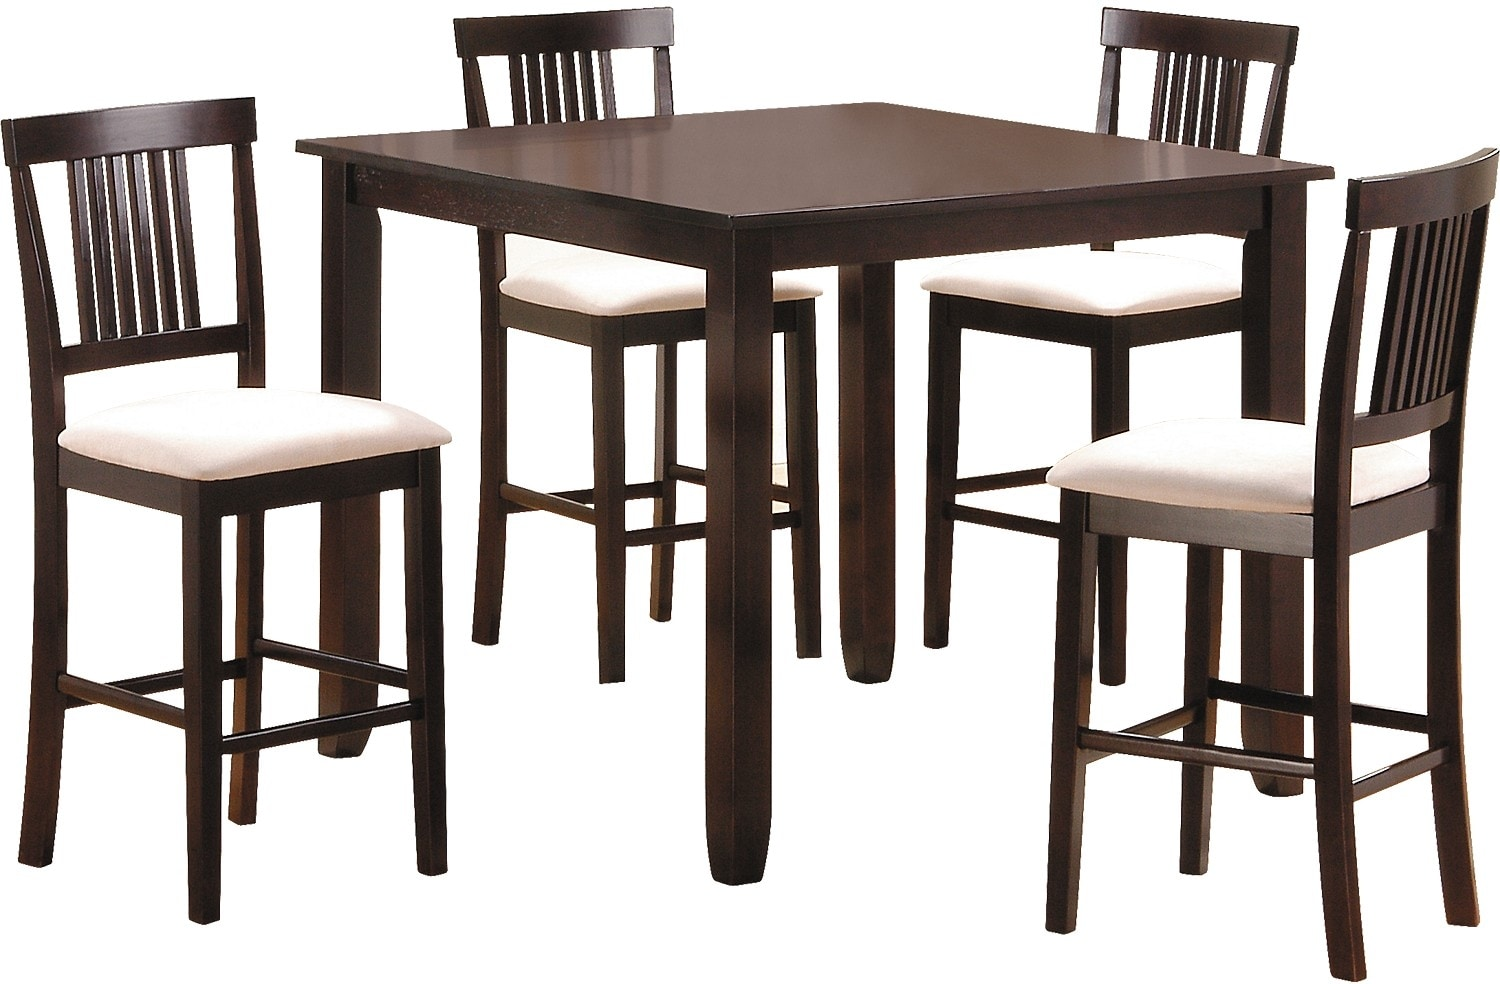 The Brick Dining Room Furniture Dining Room Furniture Nicole 5 Piece Counter Height Dining Package